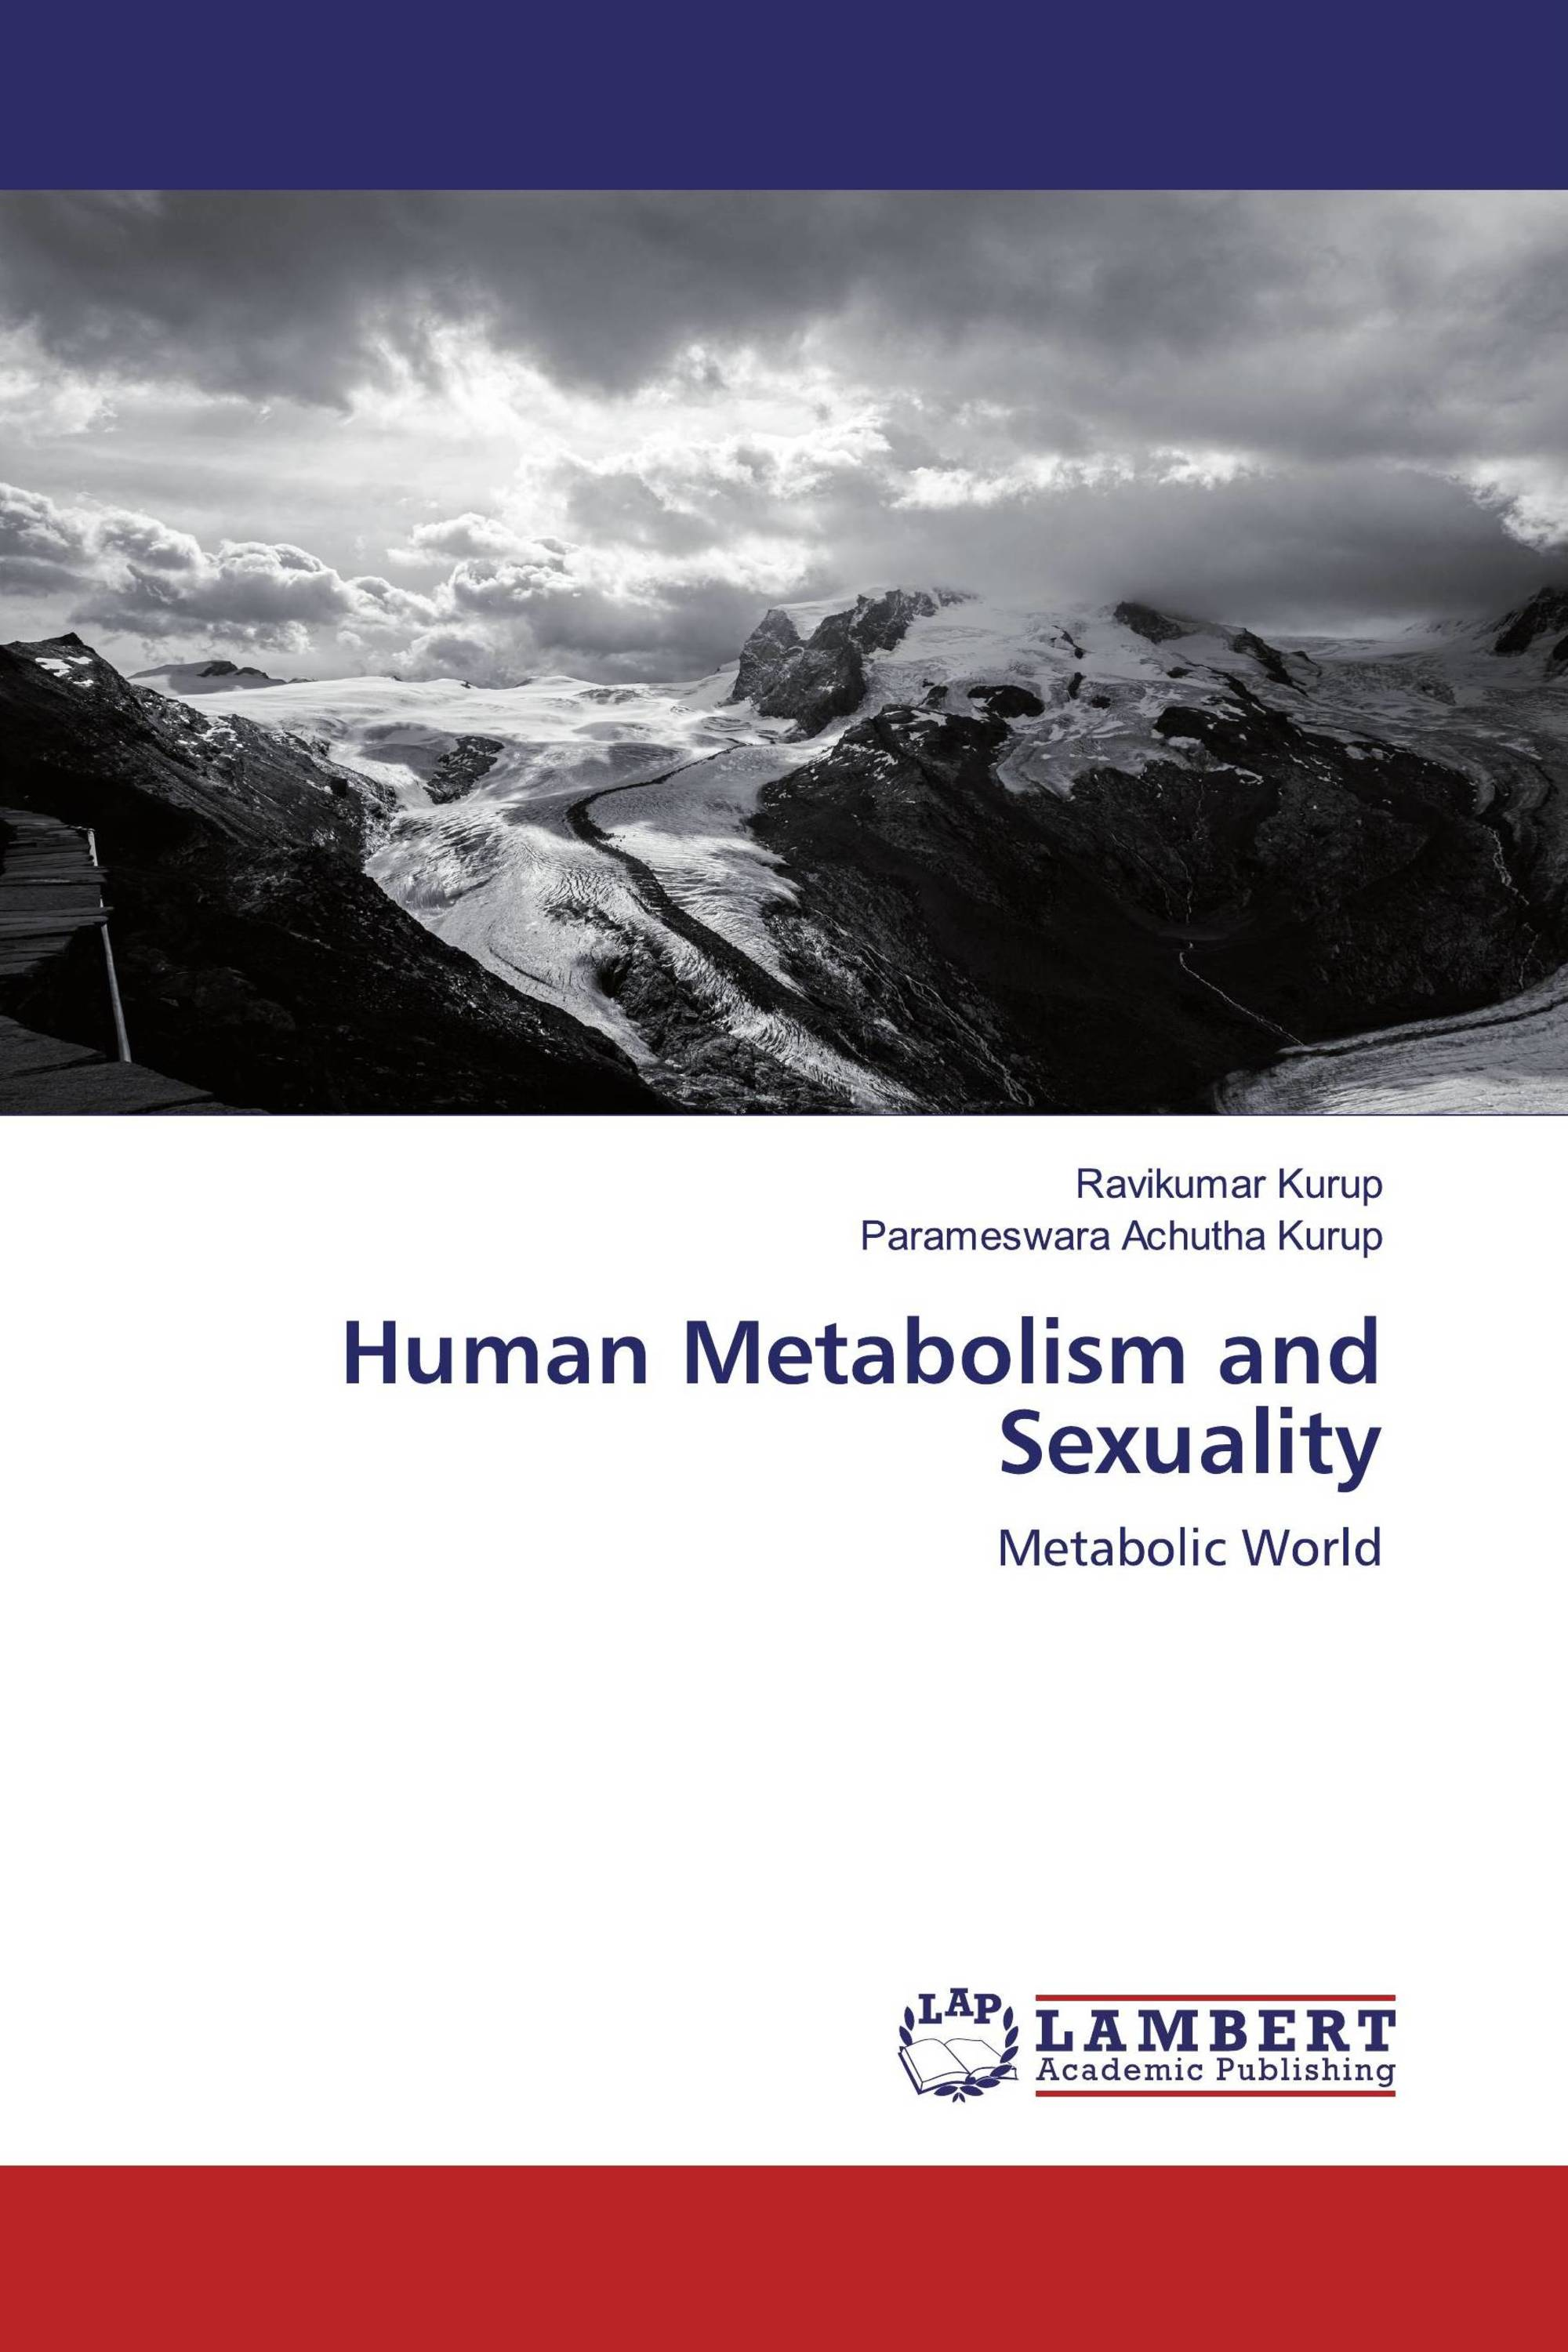 Human Metabolism and Sexuality